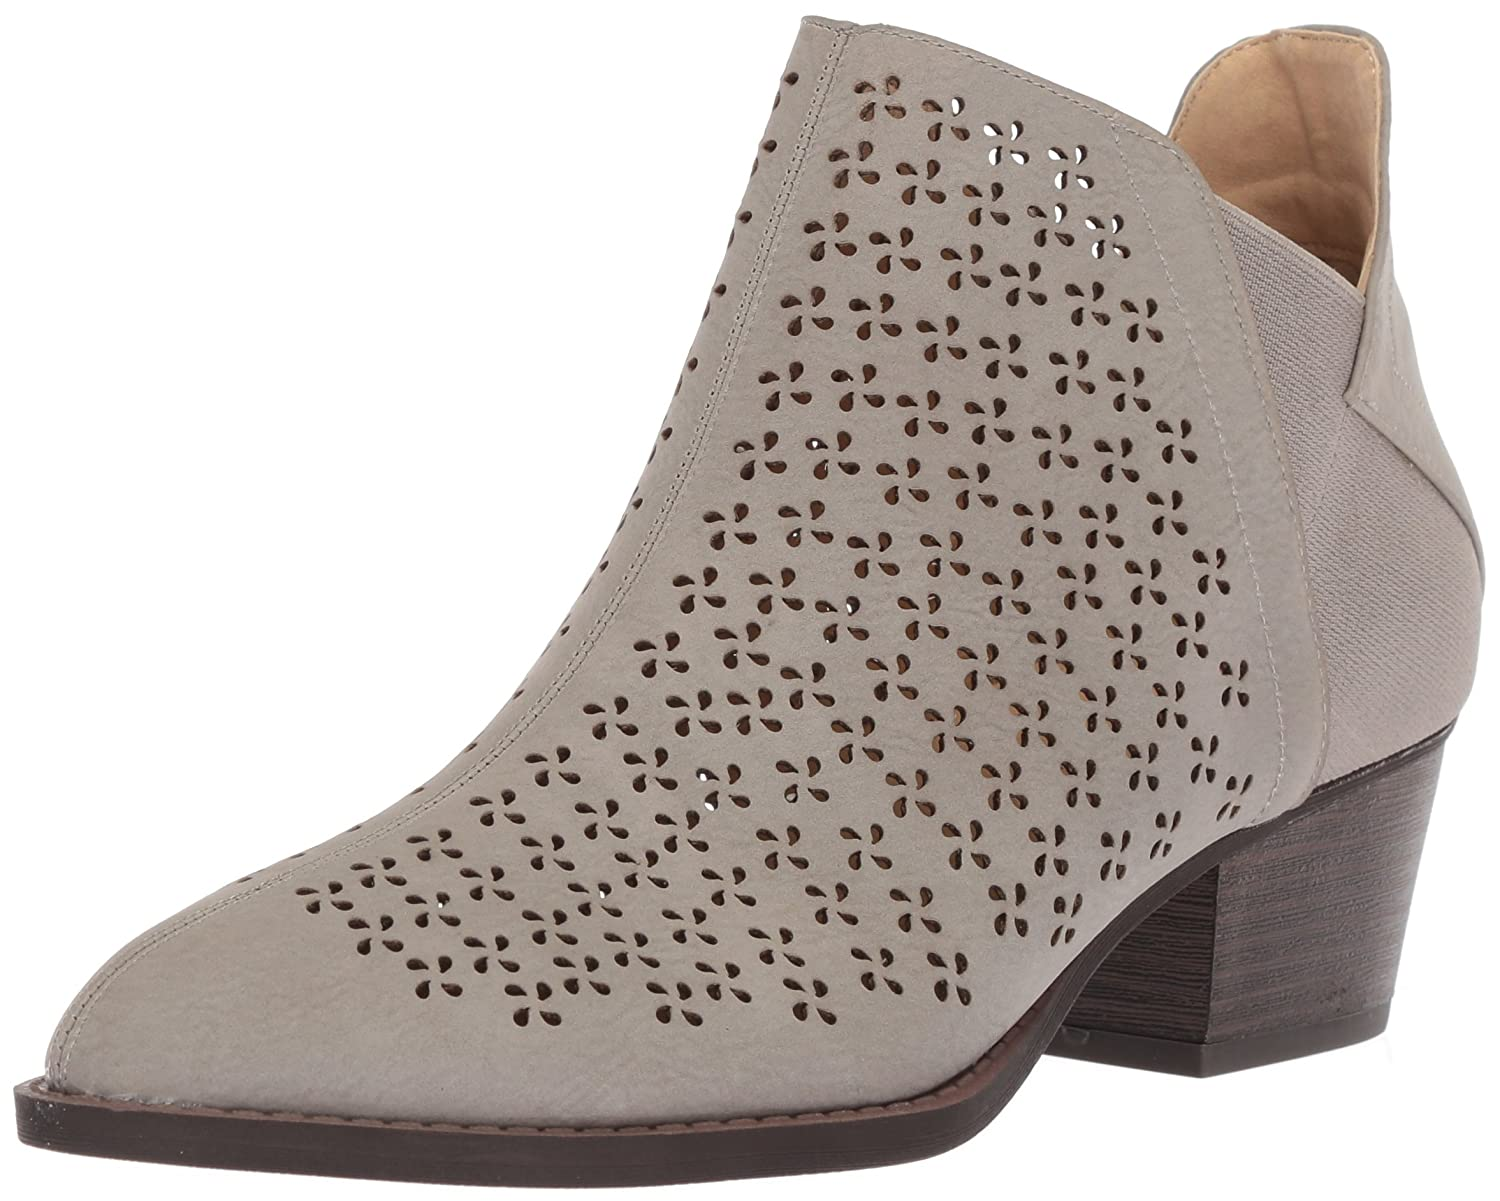 CL by Chinese Laundry Women's Cambria Ankle Boot B076DHTWJD 8.5 B(M) US|Grey Nubuck